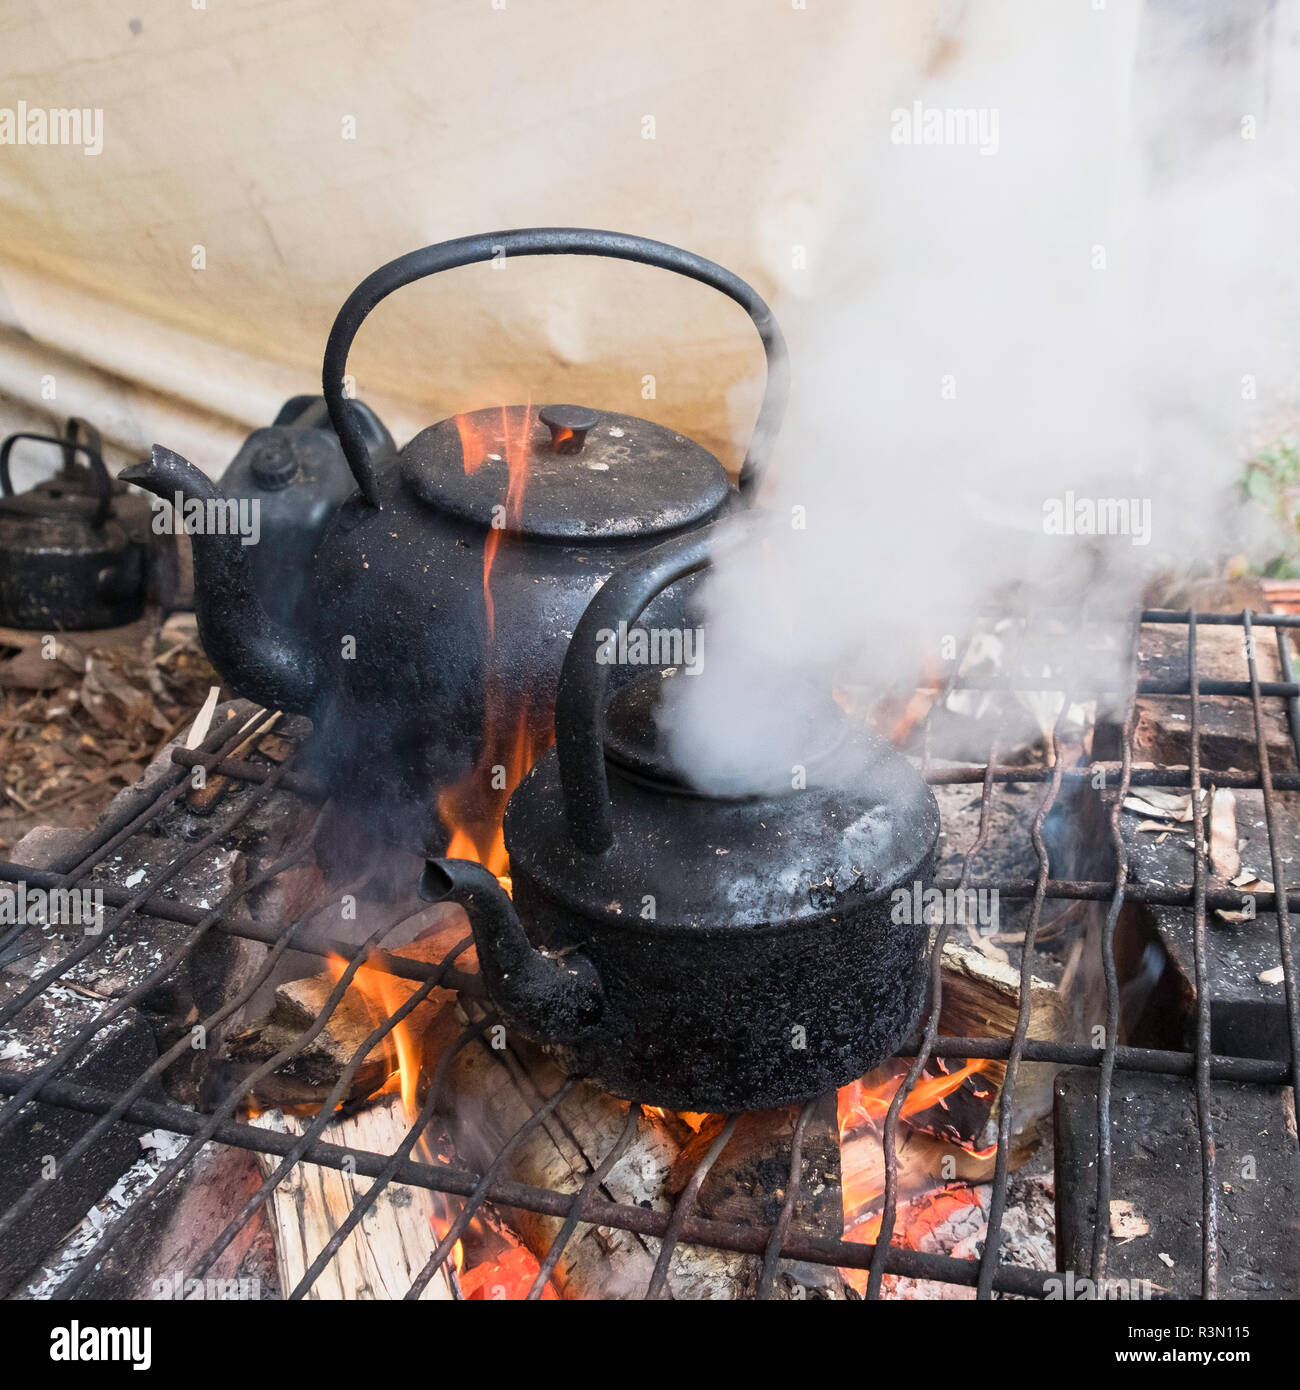 Kettle boiling over an open fire. - Stock Image